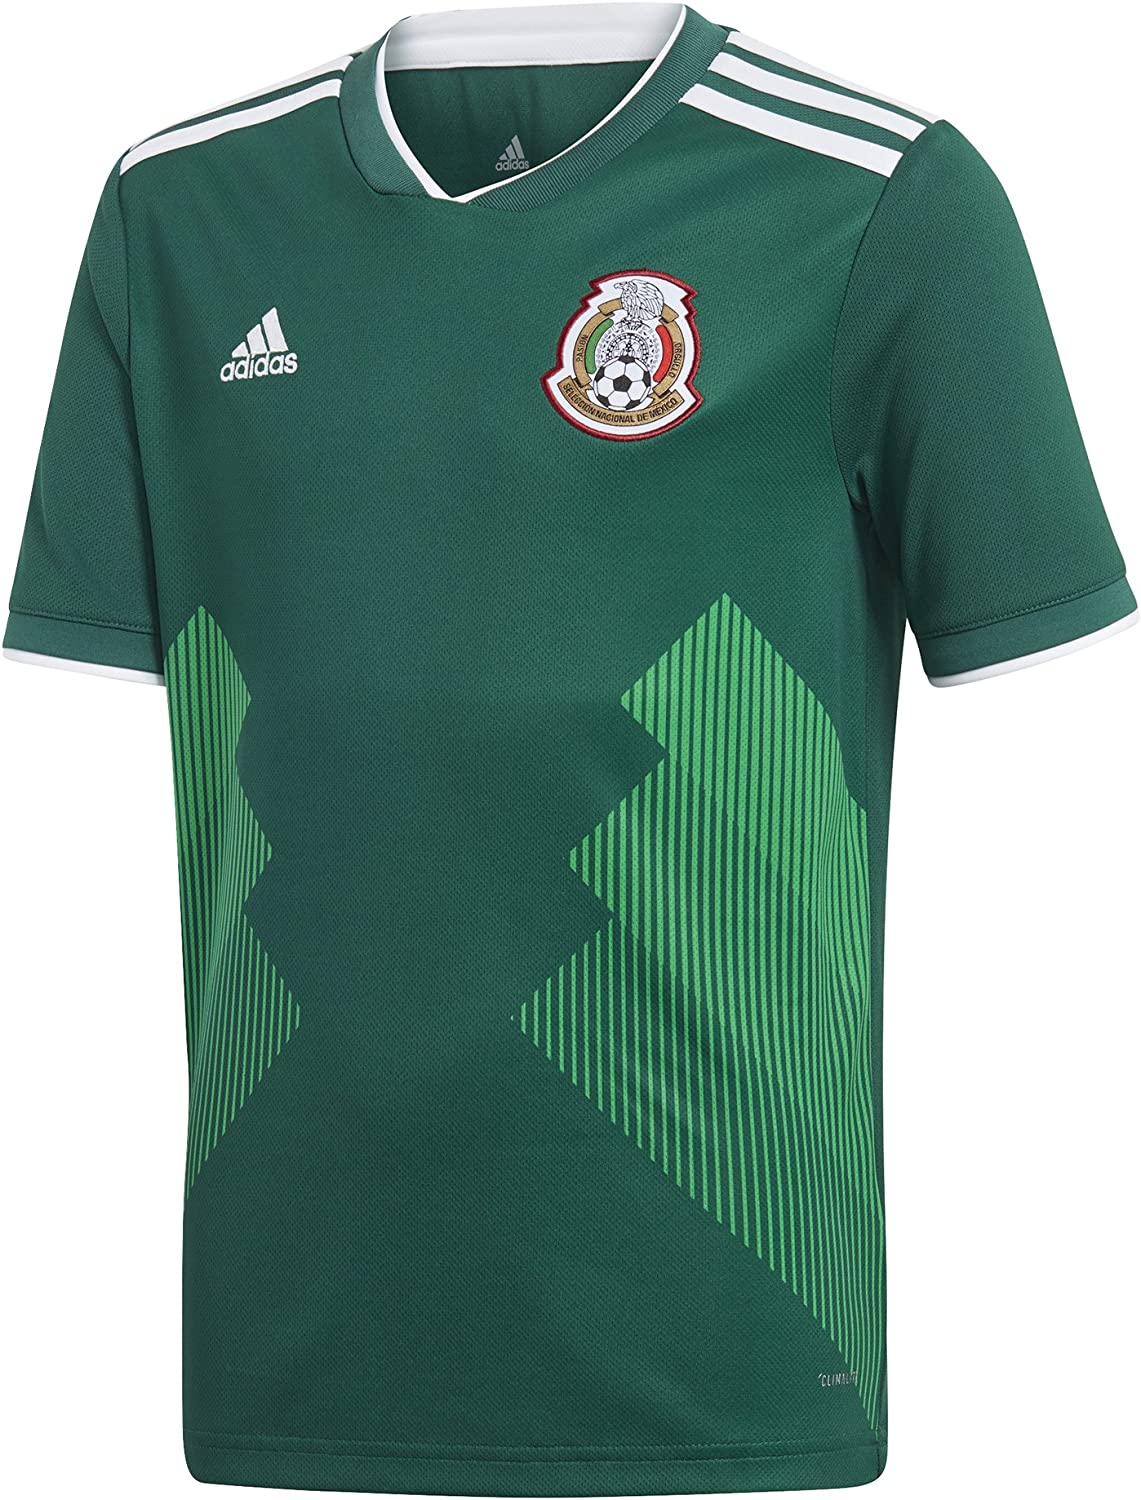 adidas Mexico Youth World Cup Home Soccer Jersey (BQ4696)